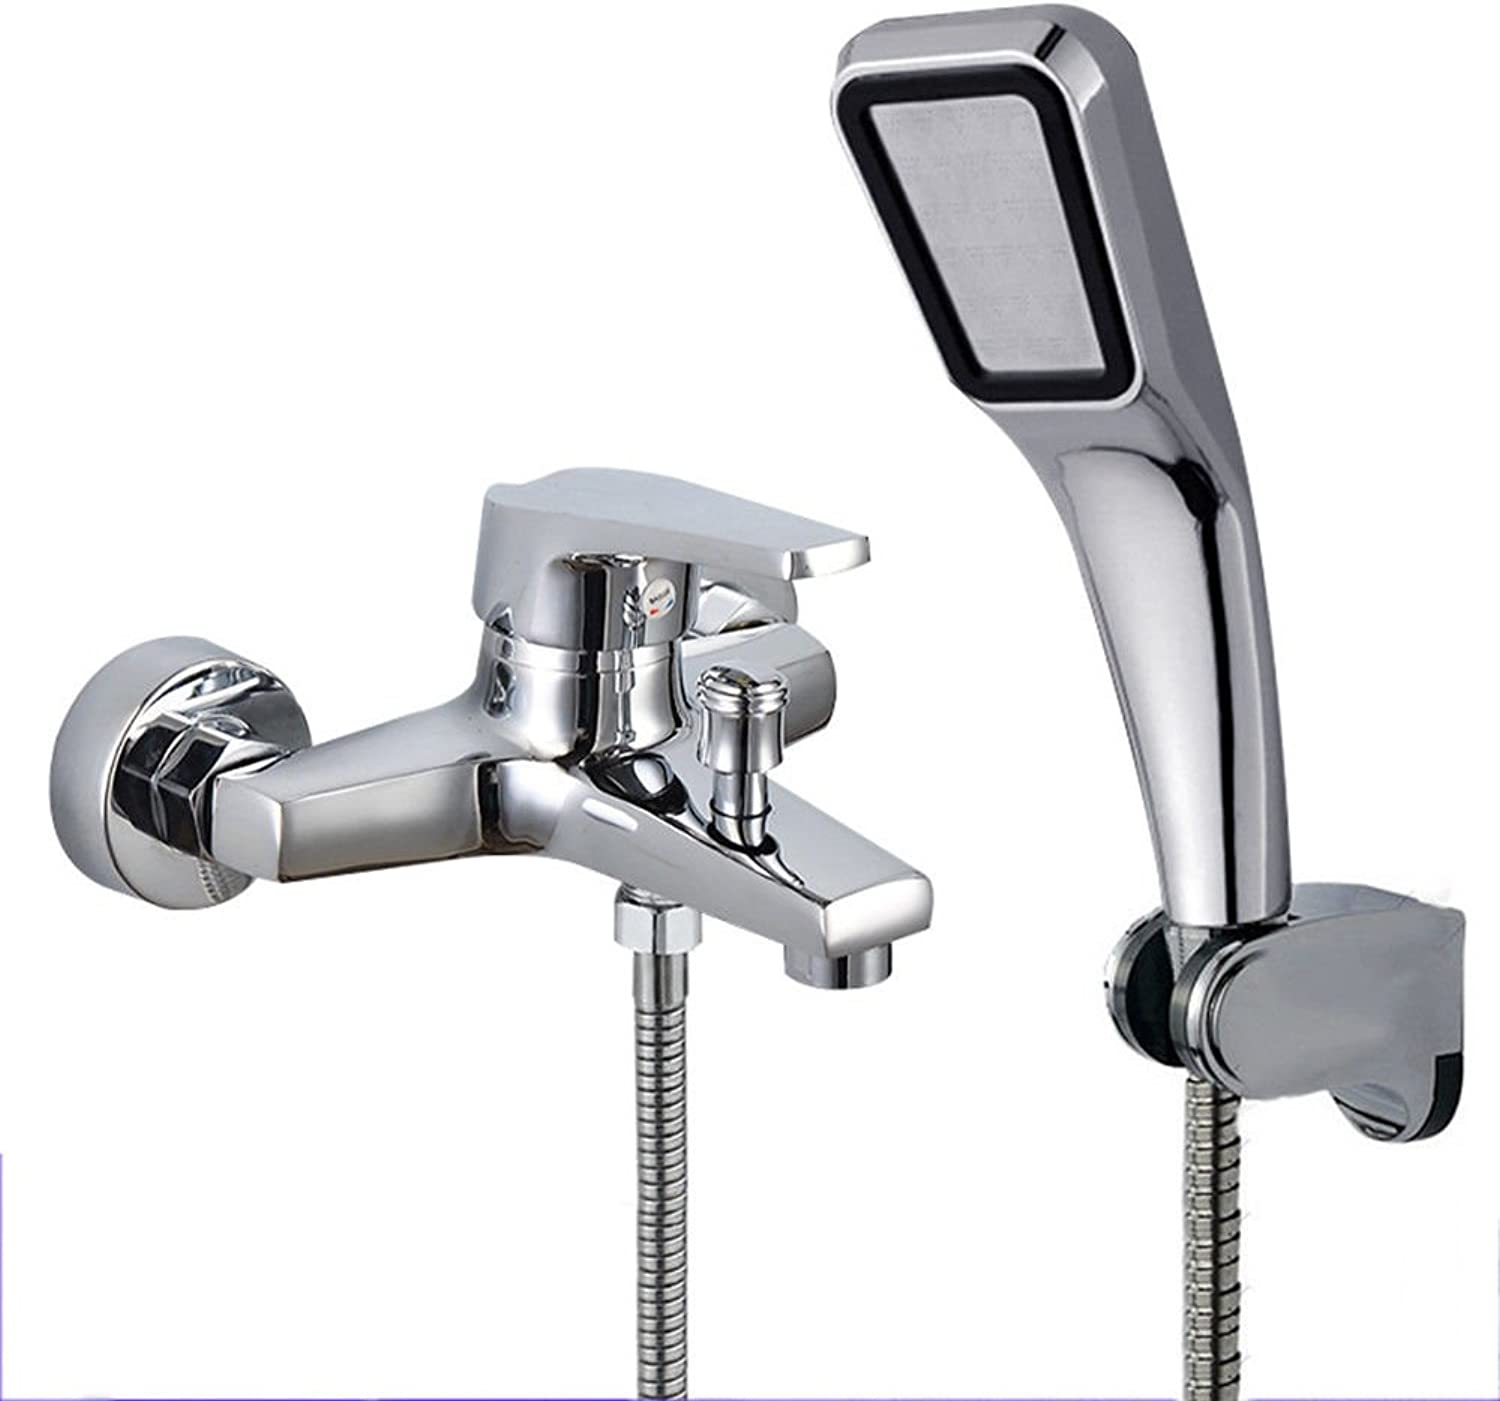 Hlluya Professional Sink Mixer Tap Kitchen Faucet Faucets copper bathroom shower pack hot and cold shower faucet bathroom shower set into the wall mounted handheld shower, B